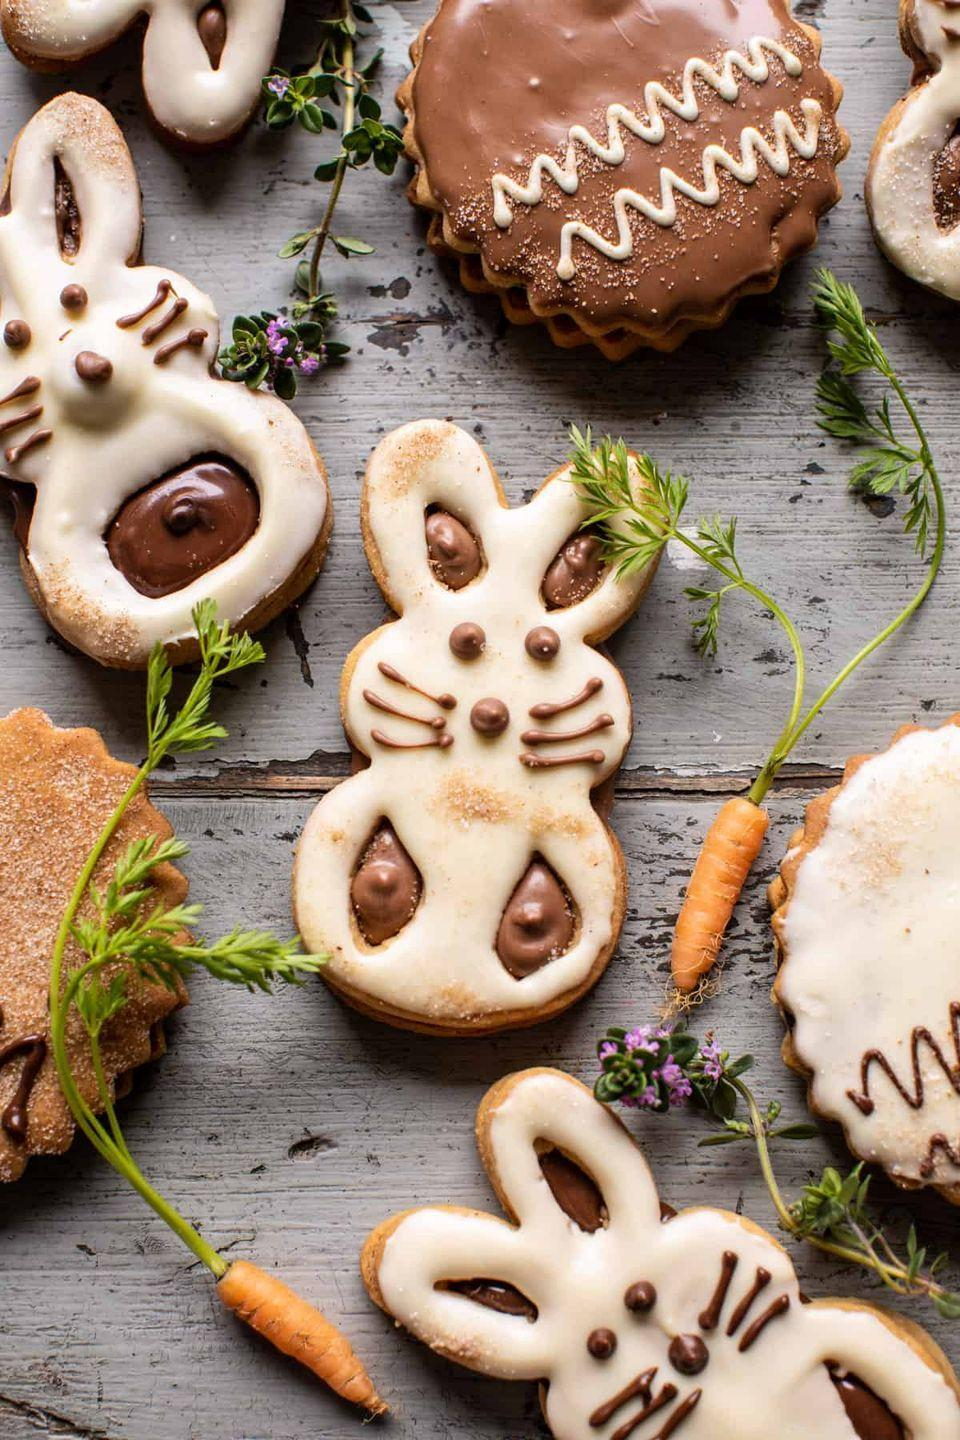 "<p>Not only are these bunny cookies adorable, but they're delicious! Make some shortbread eggs to go along with them.</p><p><strong>Get the recipe at <a href=""https://www.halfbakedharvest.com/milk-chocolate-stuffed-peanut-butter-bunny-cookies/"" rel=""nofollow noopener"" target=""_blank"" data-ylk=""slk:Half Baked Harvest"" class=""link rapid-noclick-resp"">Half Baked Harvest</a>.</strong></p><p><strong><a class=""link rapid-noclick-resp"" href=""https://go.redirectingat.com?id=74968X1596630&url=https%3A%2F%2Fwww.walmart.com%2Fsearch%2F%3Fquery%3Dbunny%2Bcookie%2Bcutter&sref=https%3A%2F%2Fwww.thepioneerwoman.com%2Ffood-cooking%2Fmeals-menus%2Fg35408493%2Feaster-desserts%2F"" rel=""nofollow noopener"" target=""_blank"" data-ylk=""slk:SHOP BUNNY COOKIE CUTTER"">SHOP BUNNY COOKIE CUTTER</a><br></strong></p>"